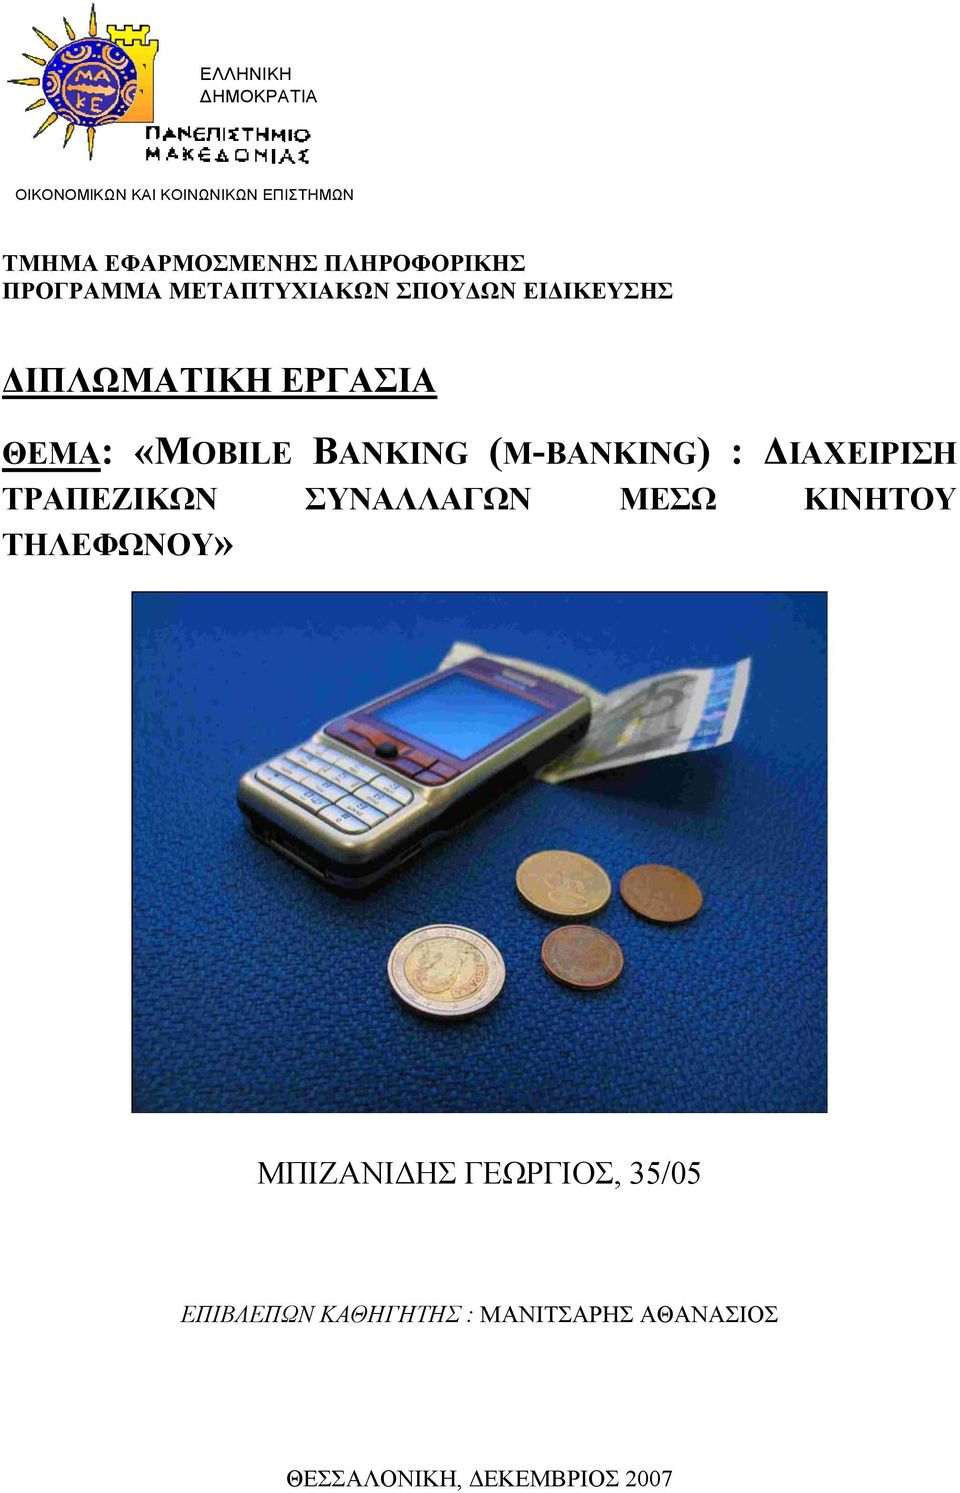 «MOBILE BANKING (M-BANKING) : ΔΙΑΧΕΙΡΙΣΗ ΤΡΑΠΕΖΙΚΩΝ ΣΥΝΑΛΛΑΓΩΝ ΜΕΣΩ ΚΙΝΗΤΟΥ